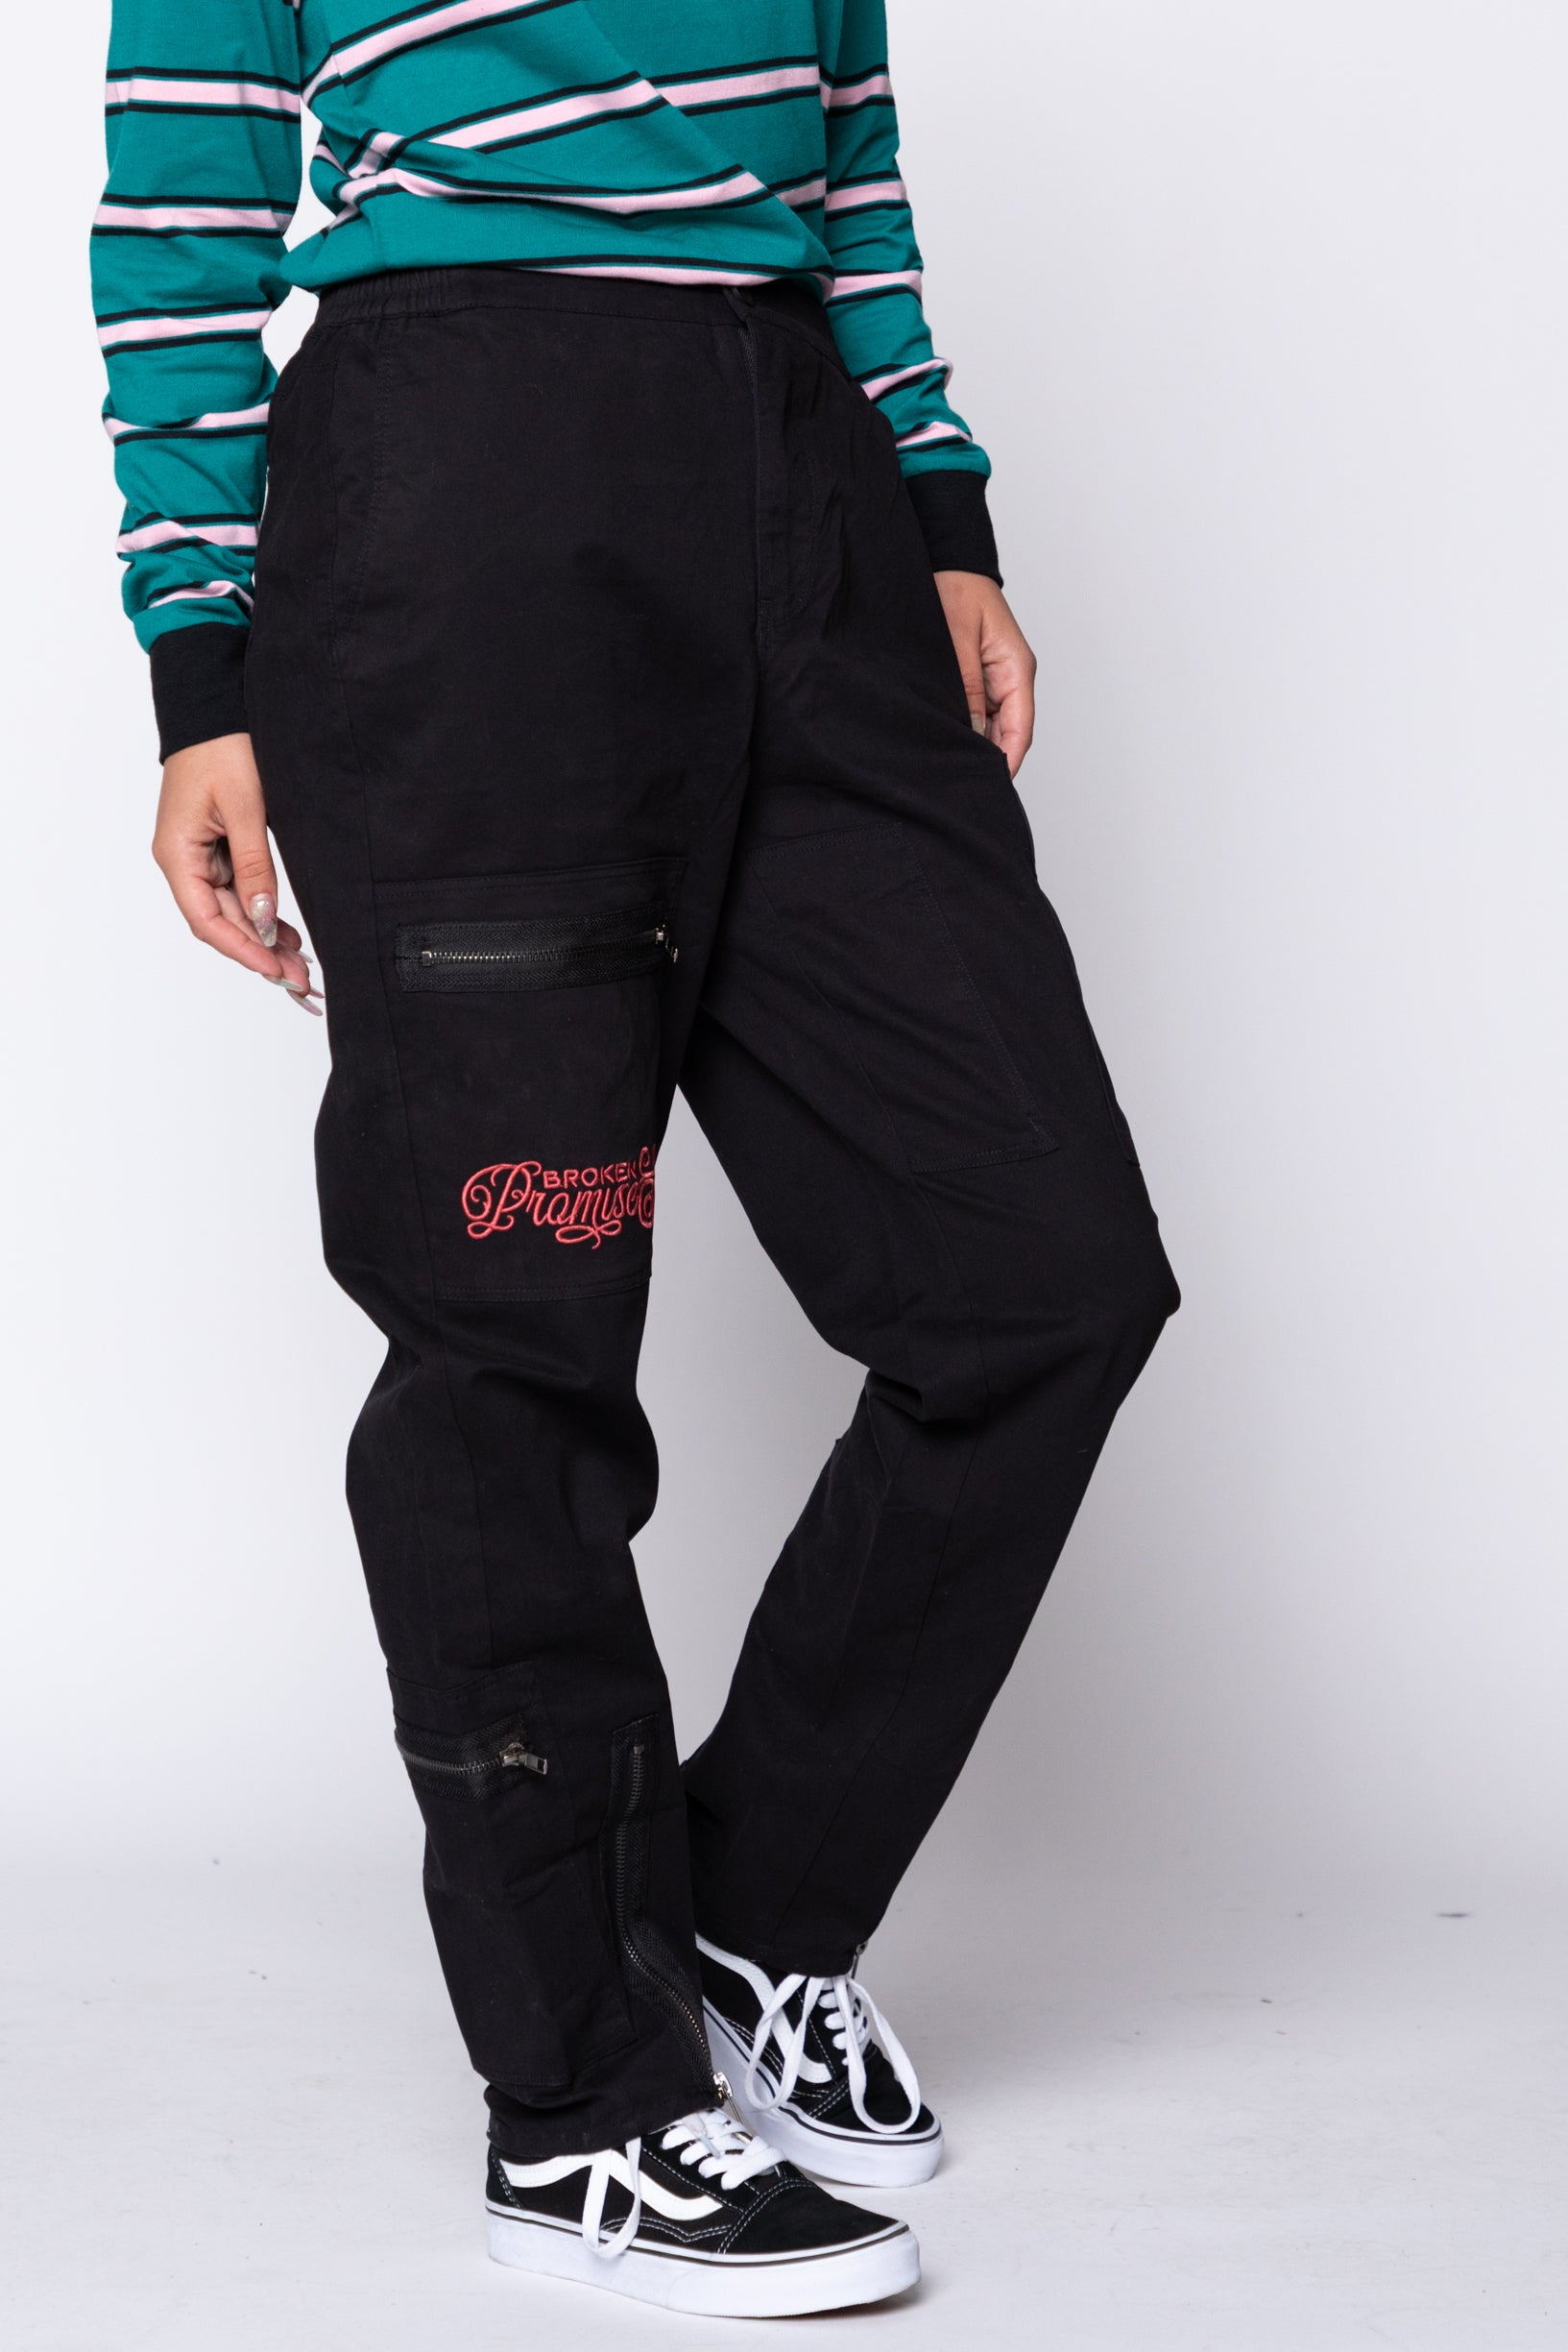 Captive Zipper Pant